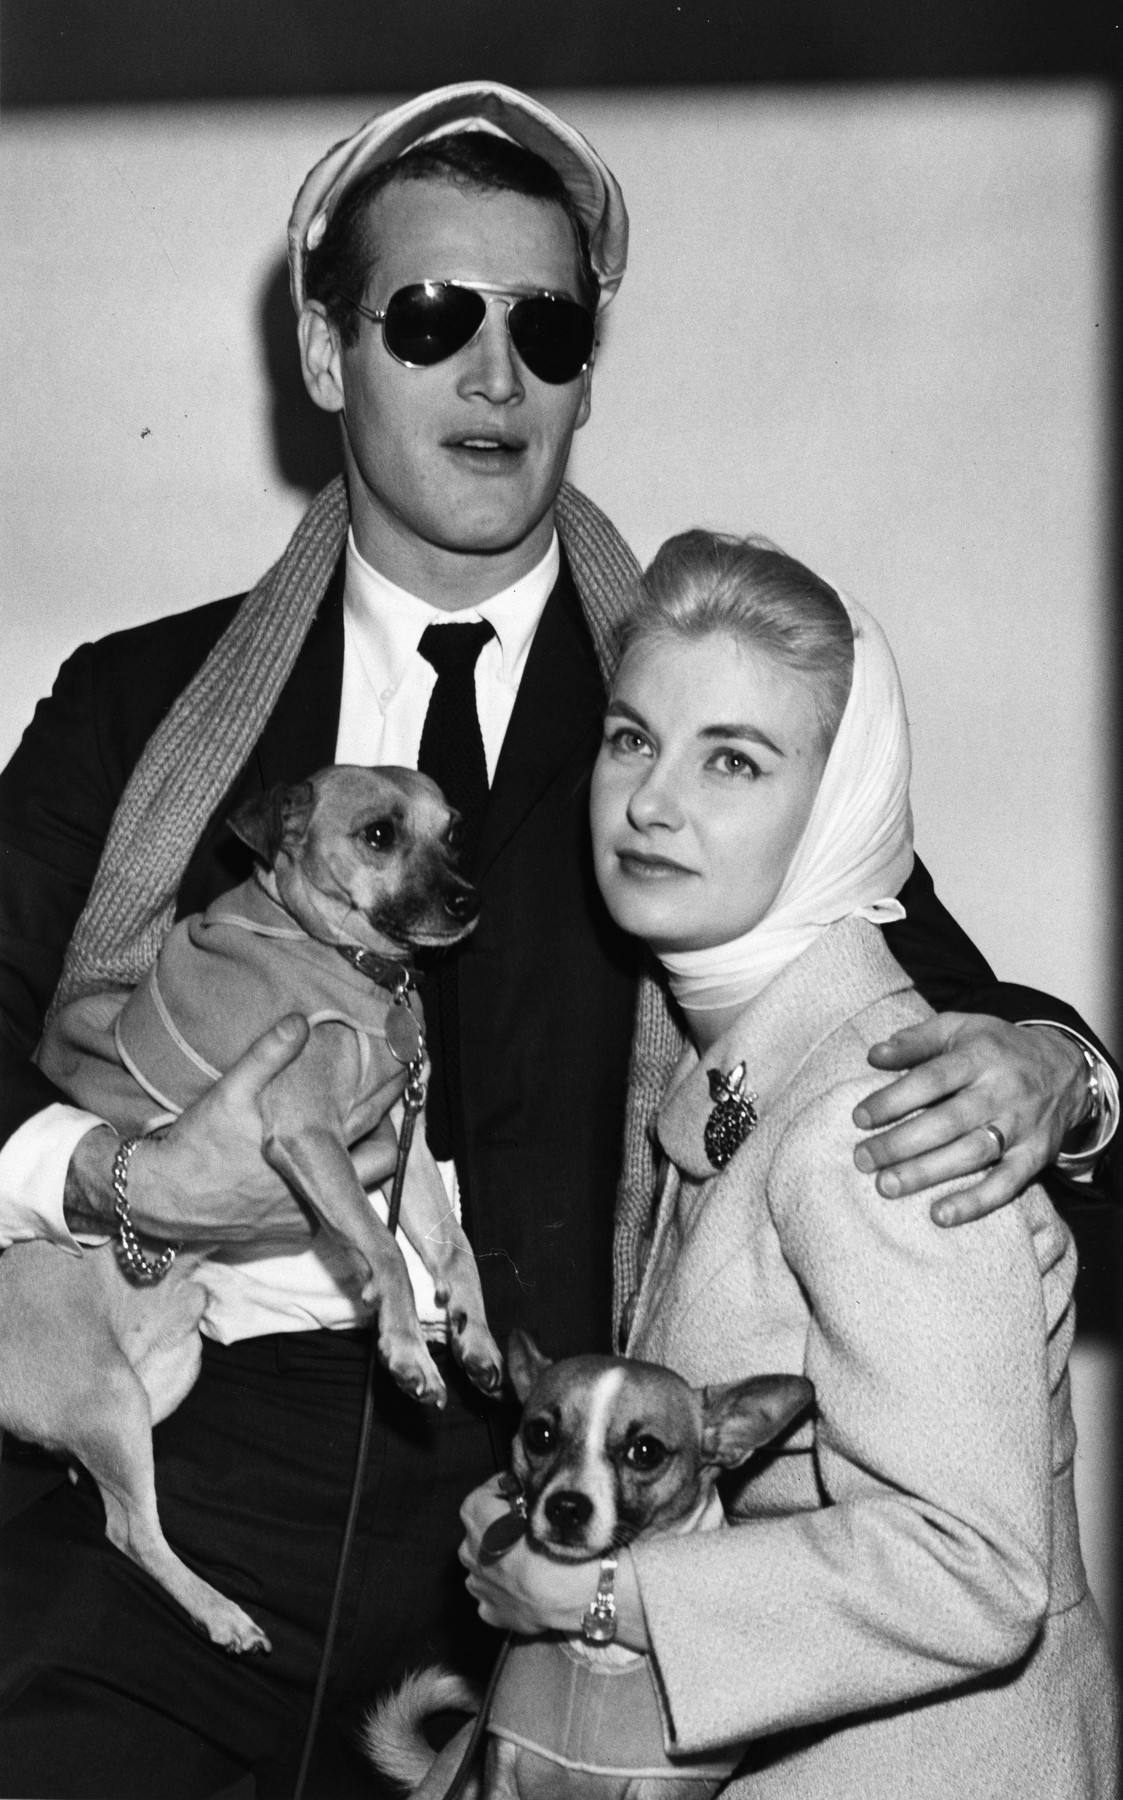 Late 1950's - Actor PAUL LEONARD NEWMAN with his wife JOANNE WOODWARD and two puppies. Exact date and place unknown., Image: 484483756, License: Rights-managed, Restrictions: FIle Photo: Late 1950's, Model Release: no, Credit line: Keystone Press Agency / Zuma Press / Profimedia